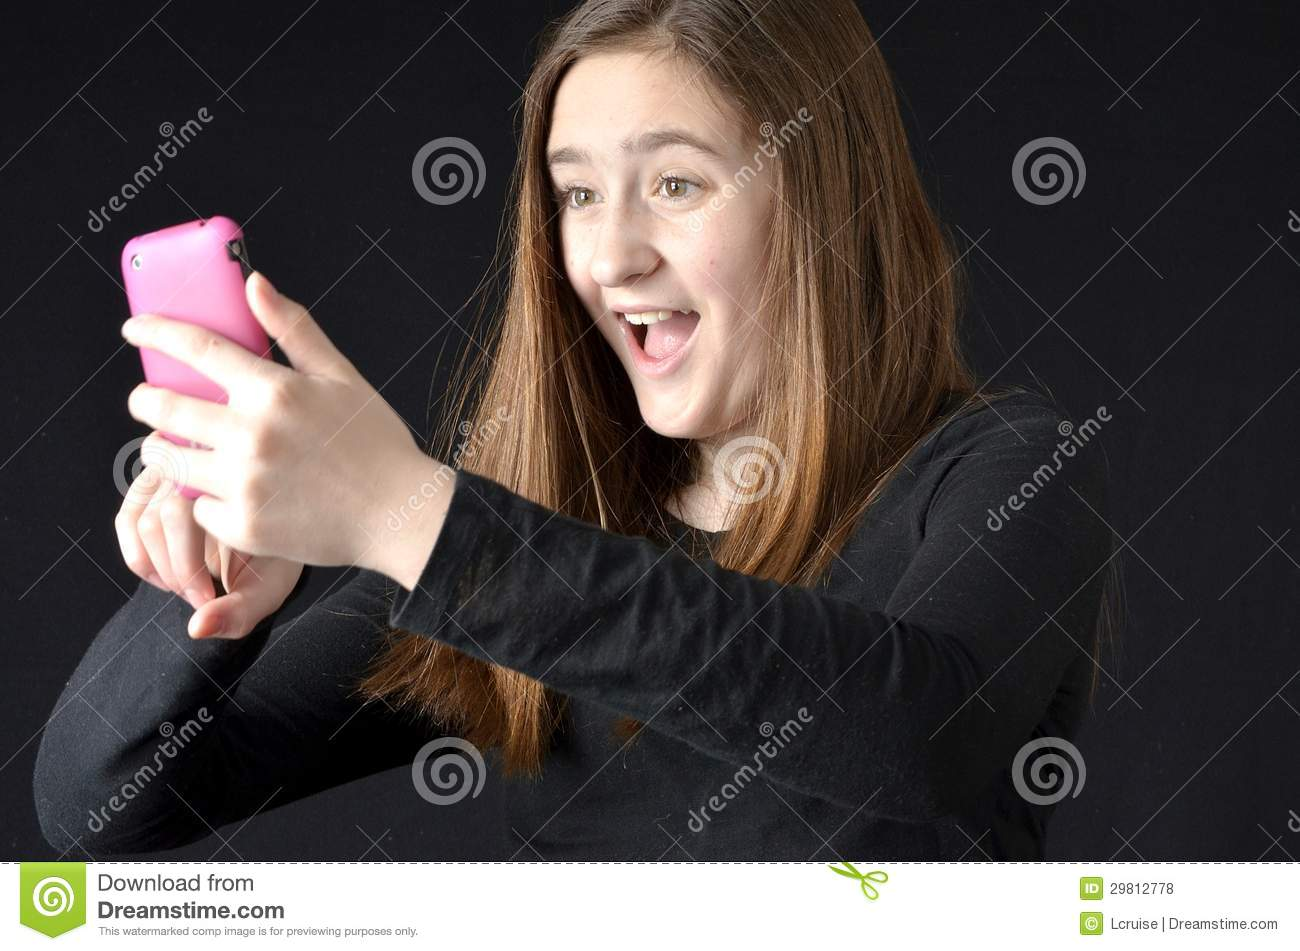 With Pink Cell Phone Wearing Black Shirt Background